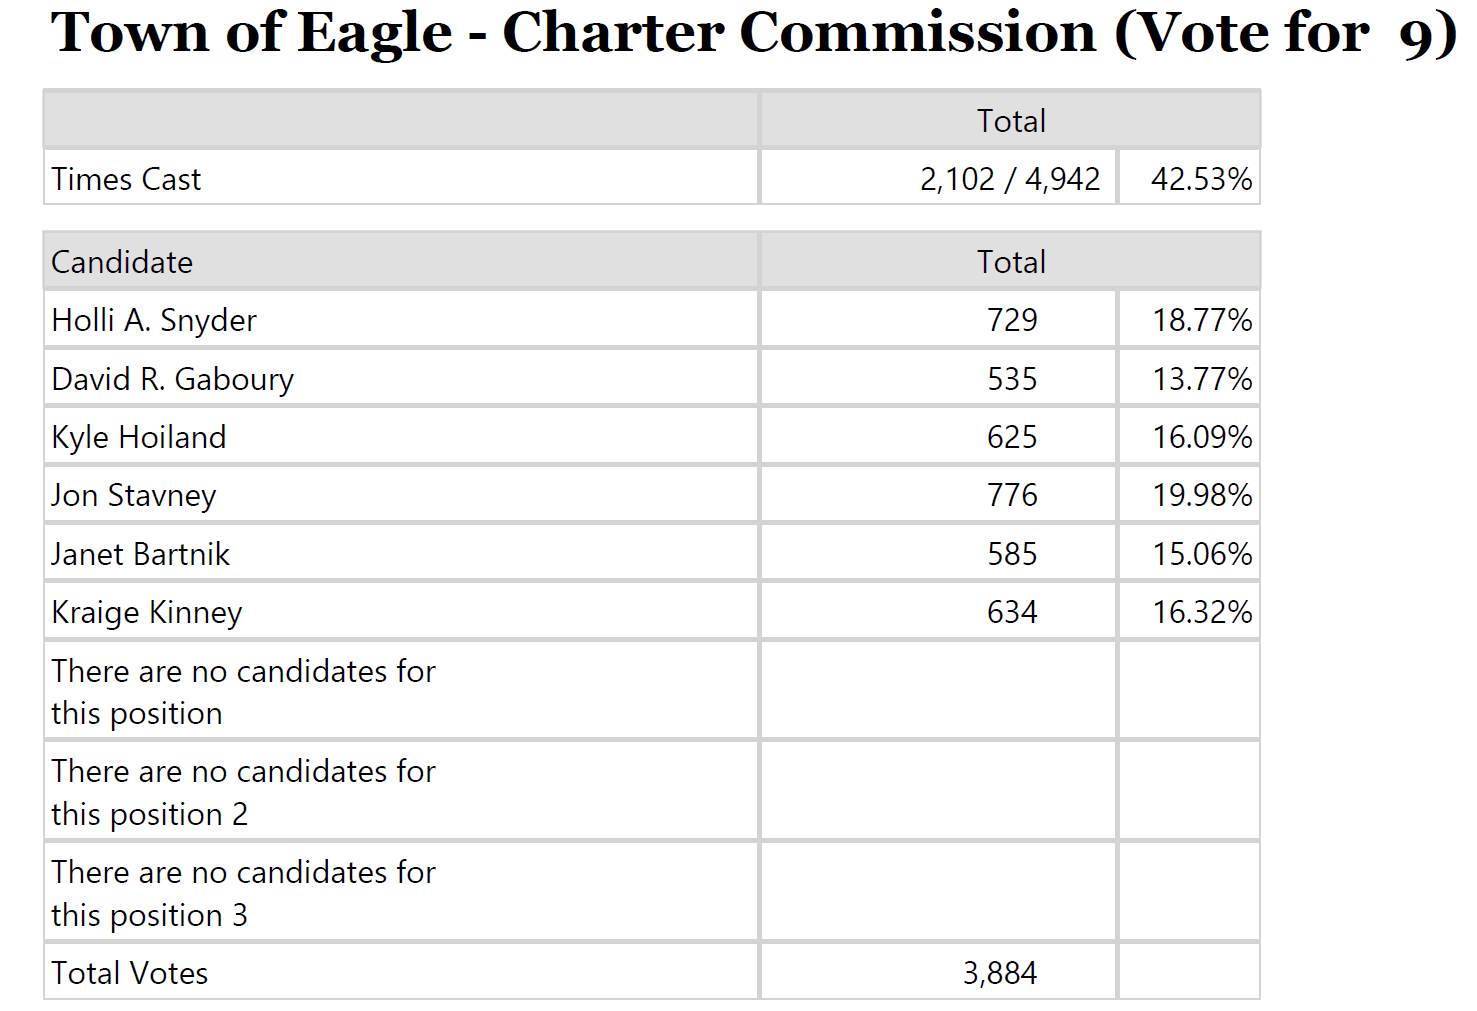 2019 Charter Commmission Final Vote